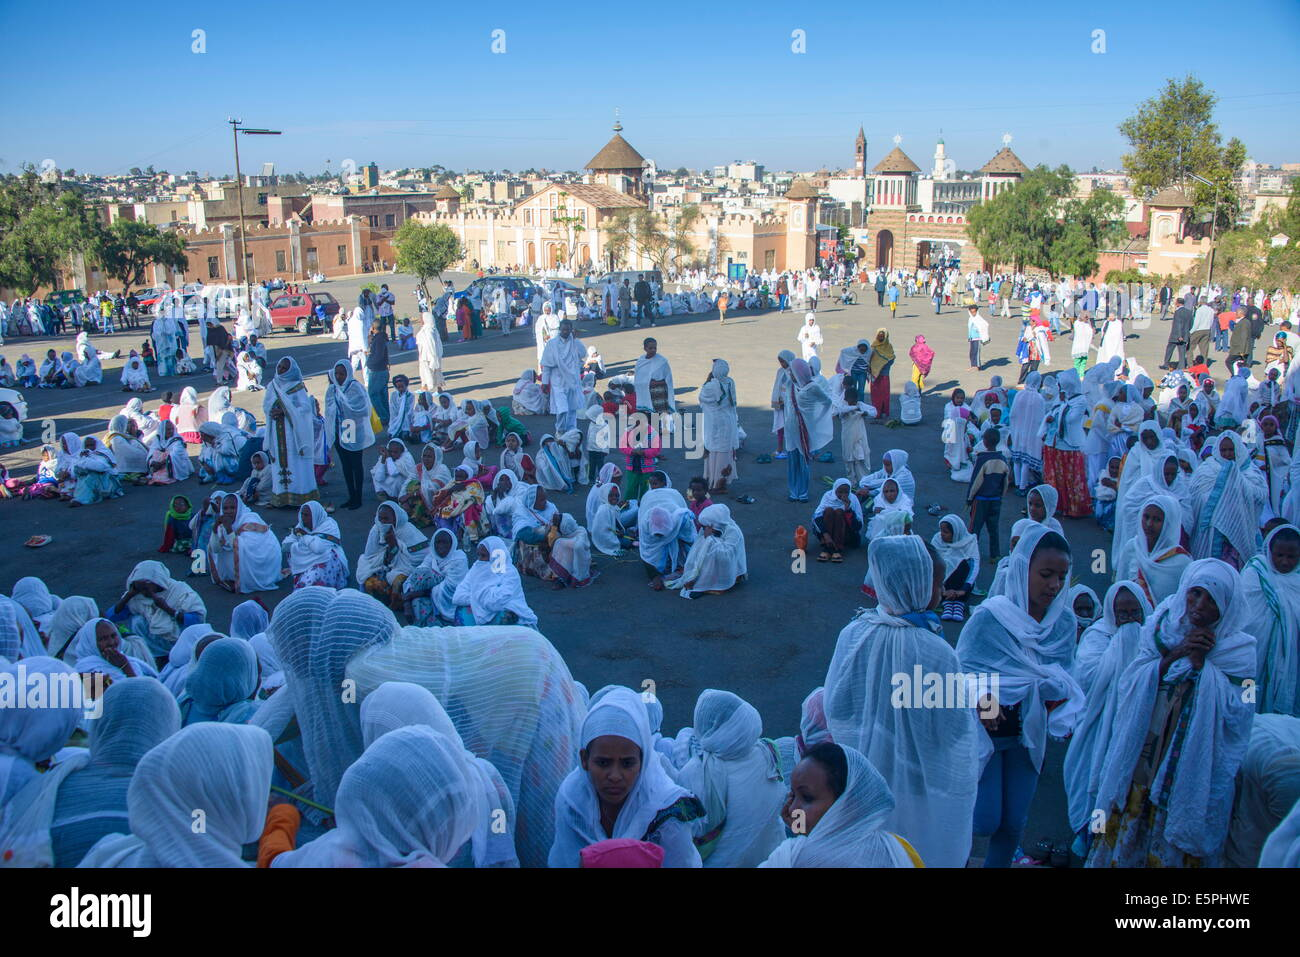 Orthodox women praying at the Easter ceremony, Coptic Cathedral of t. Mariam, Asmara, capital of Eritrea, Africa - Stock Image